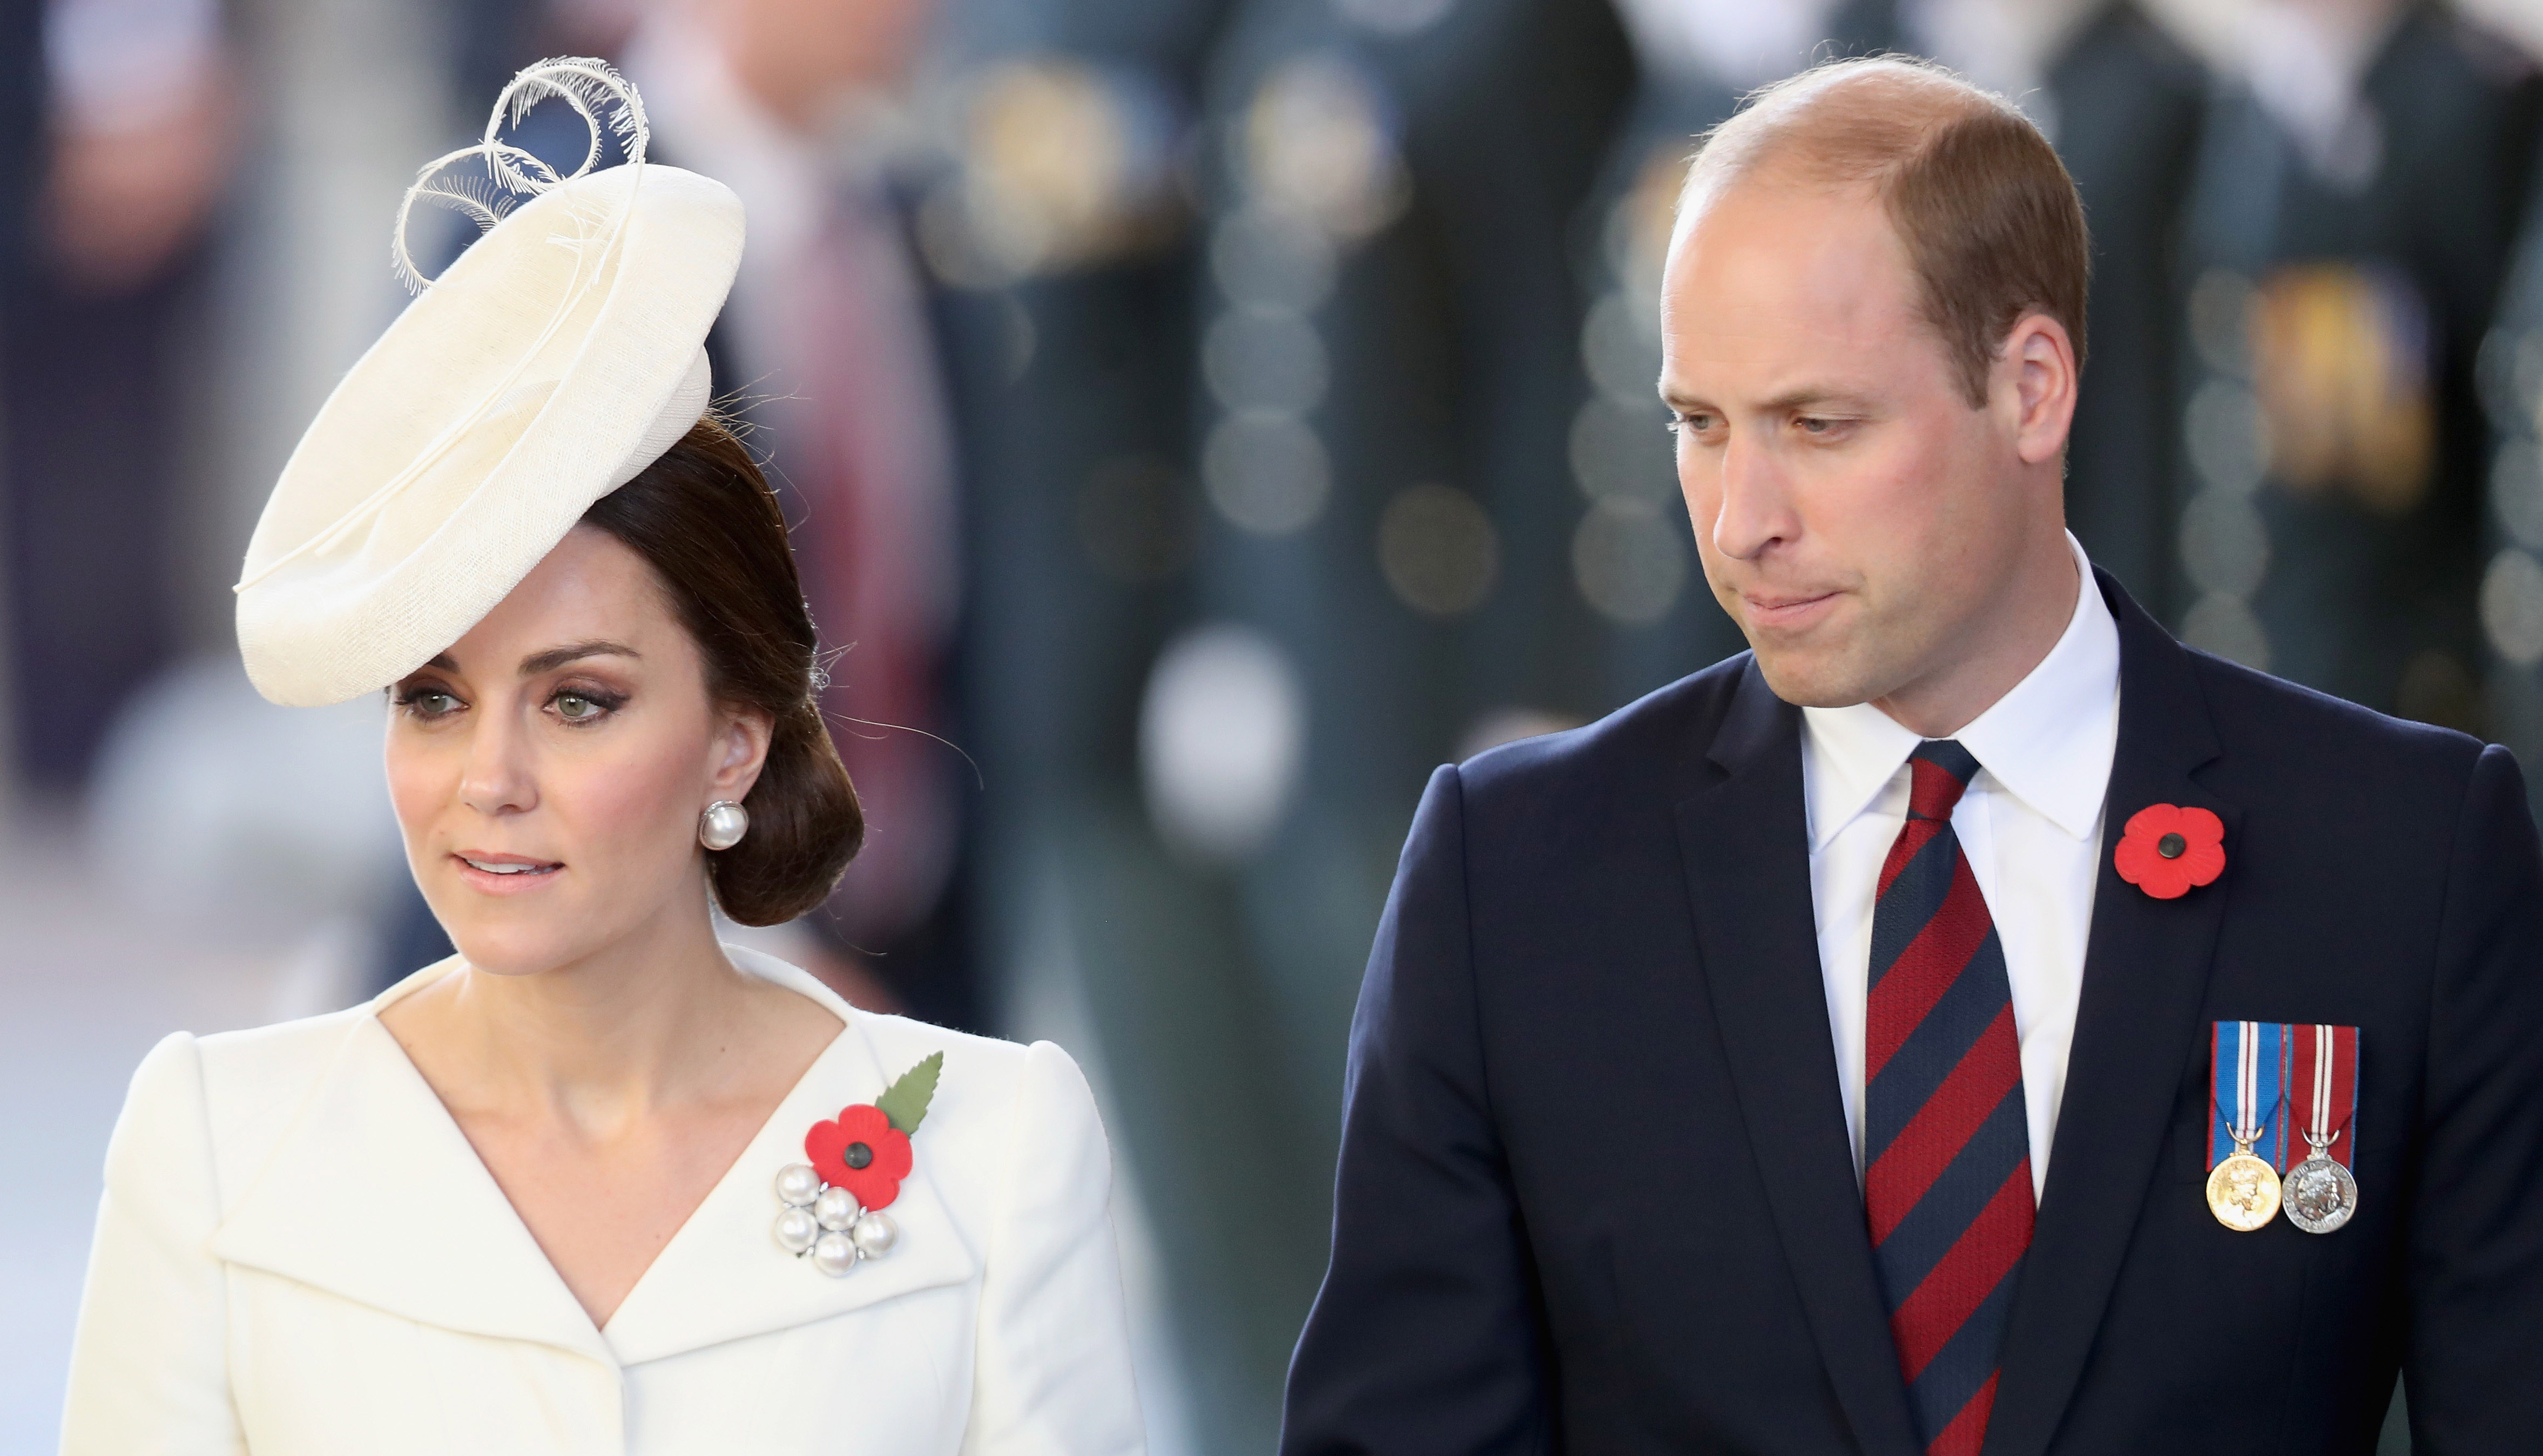 Prince William and Kate Middleton 'Deeply Concerned and Saddened' After Woman Is Run Over By Their Royal Convoy